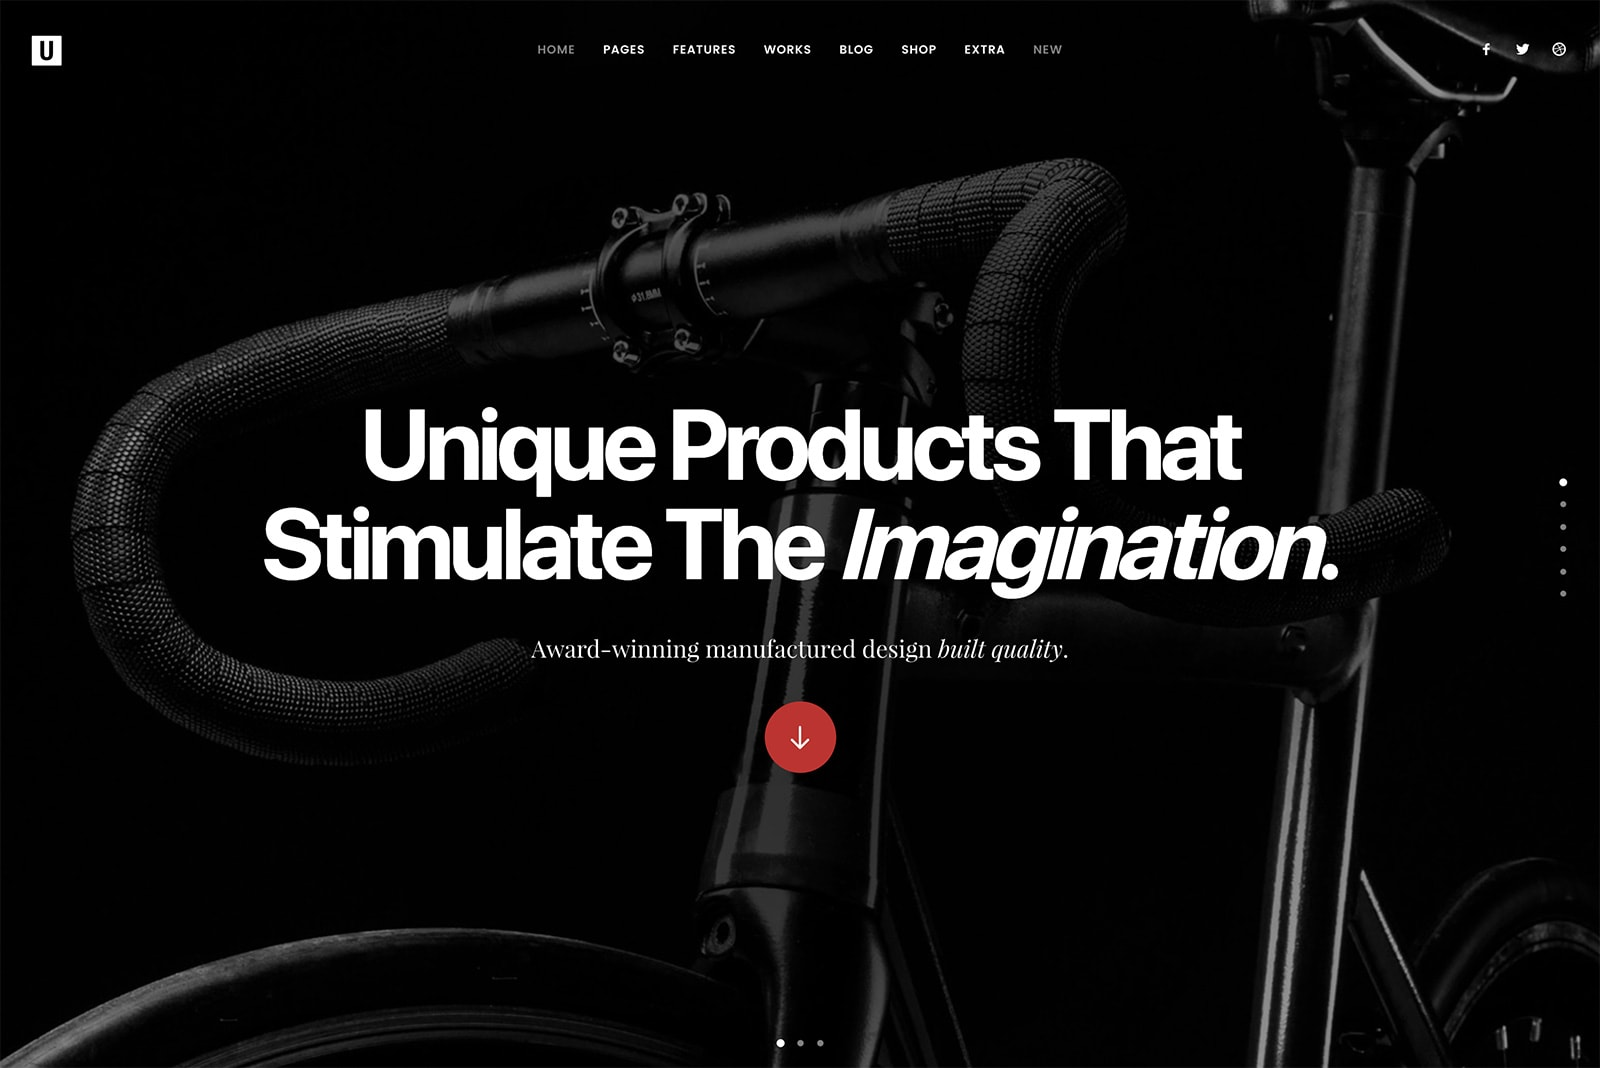 websites with dark backgrounds how to do it properly undsgn